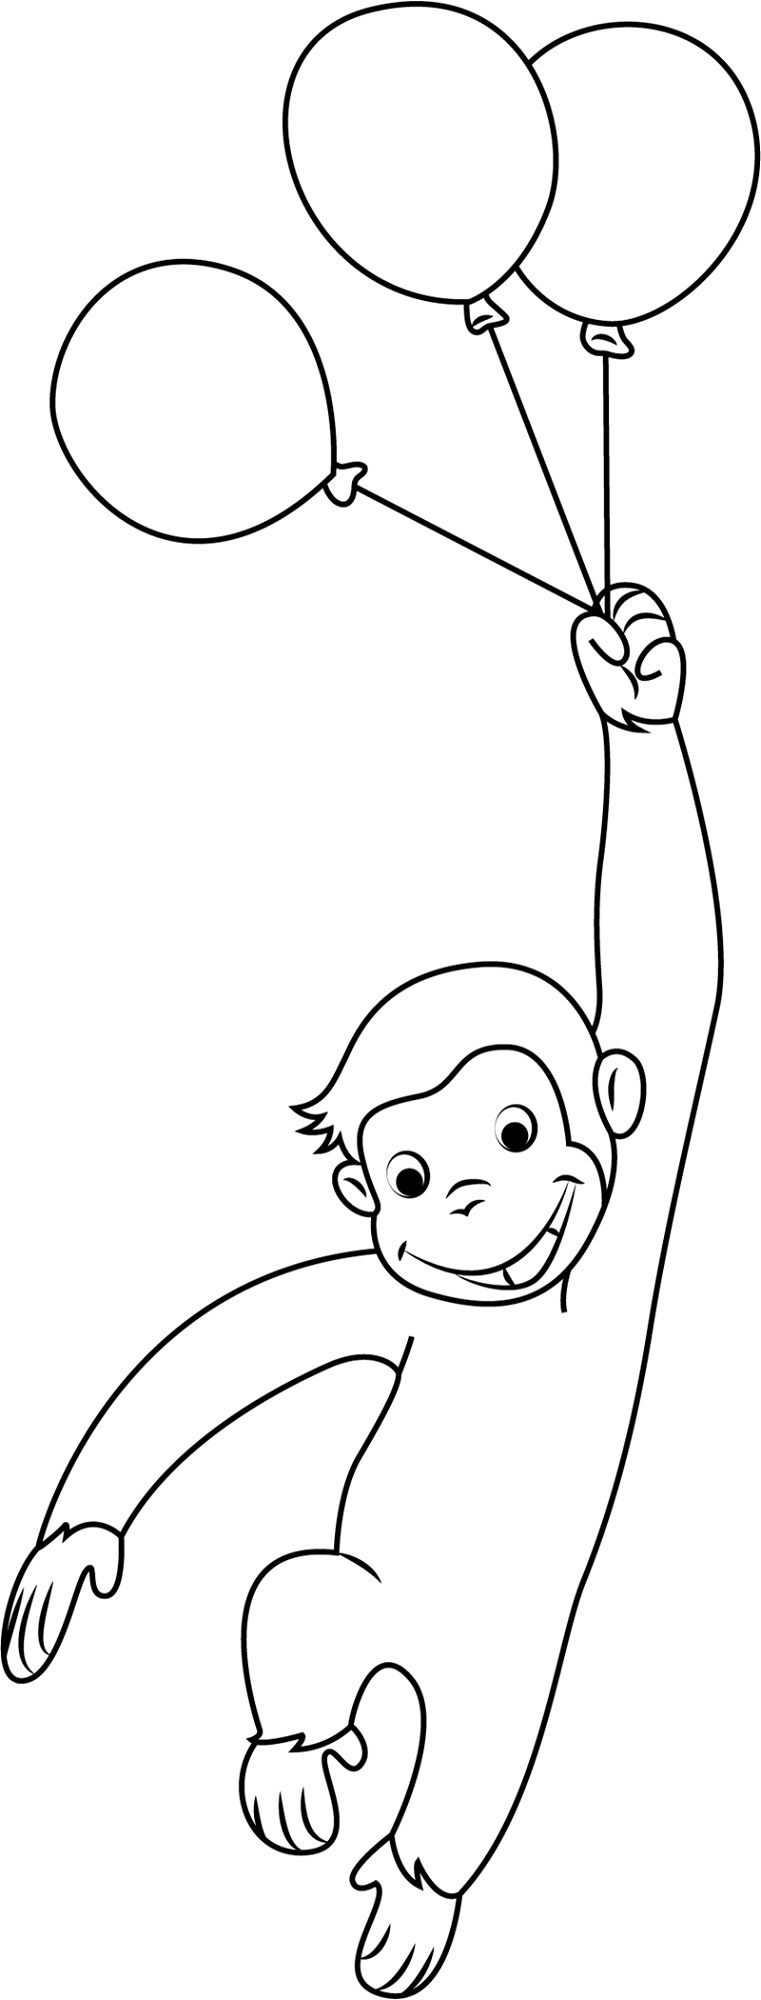 Curious George Coloring Pages With Baloons